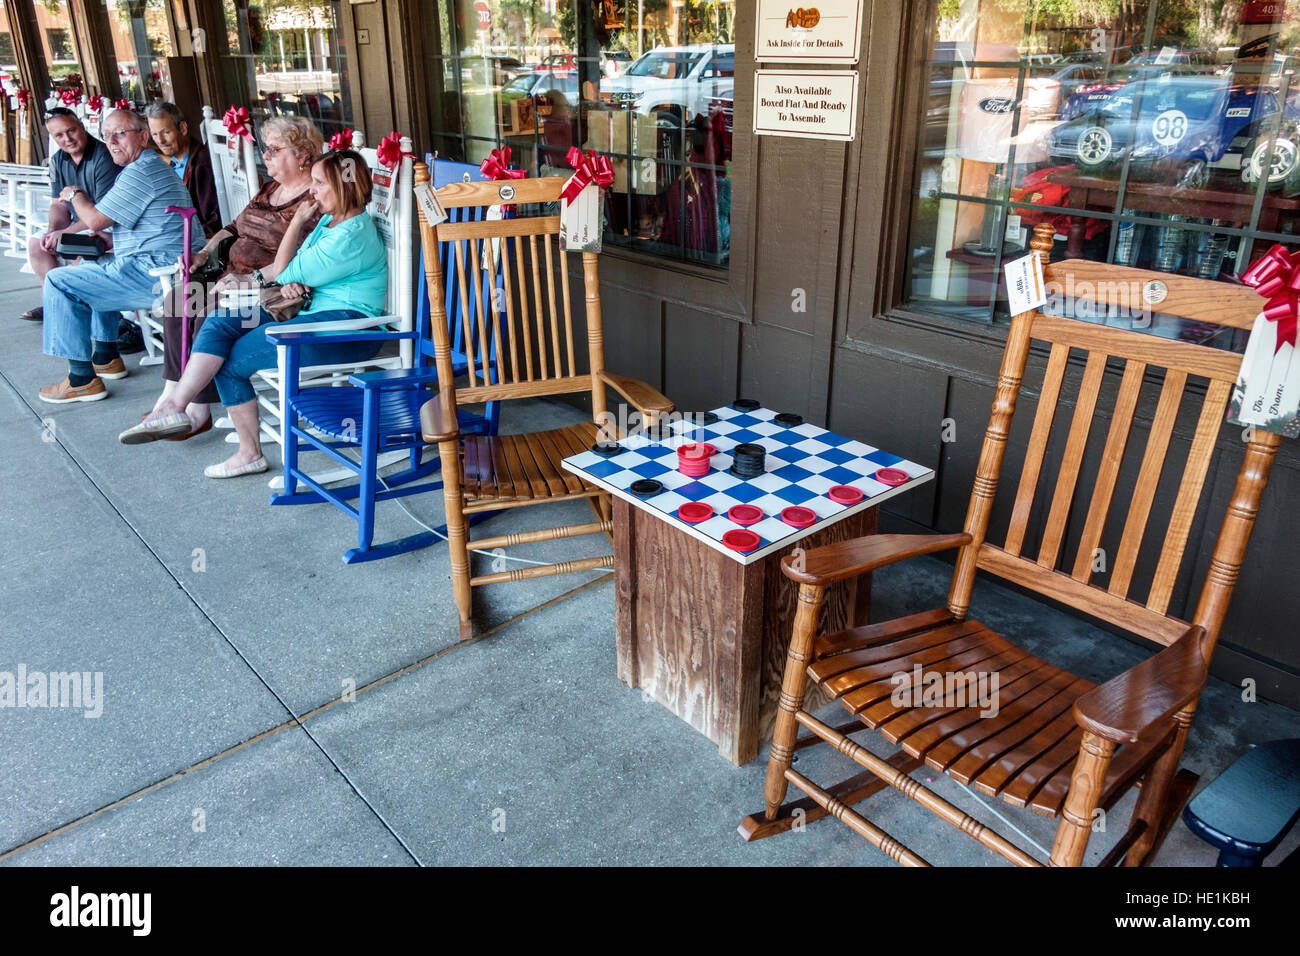 Port Charlotte Florida Cracker Barrel Old Country Store Restaurant Porch Rocking  Chairs Checkers Game Board